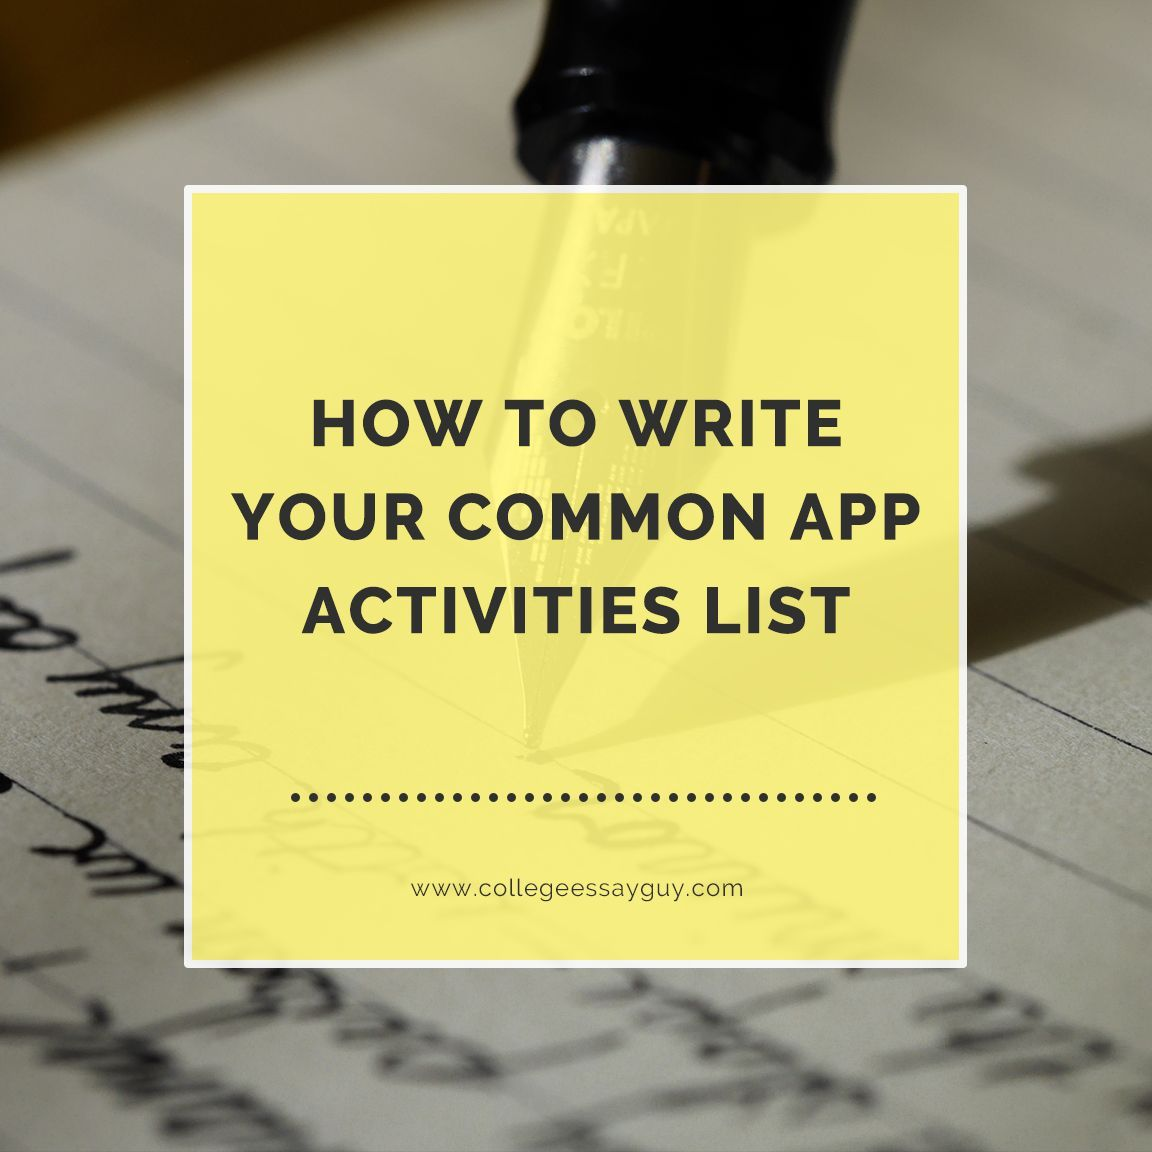 How to write your common app college activities list